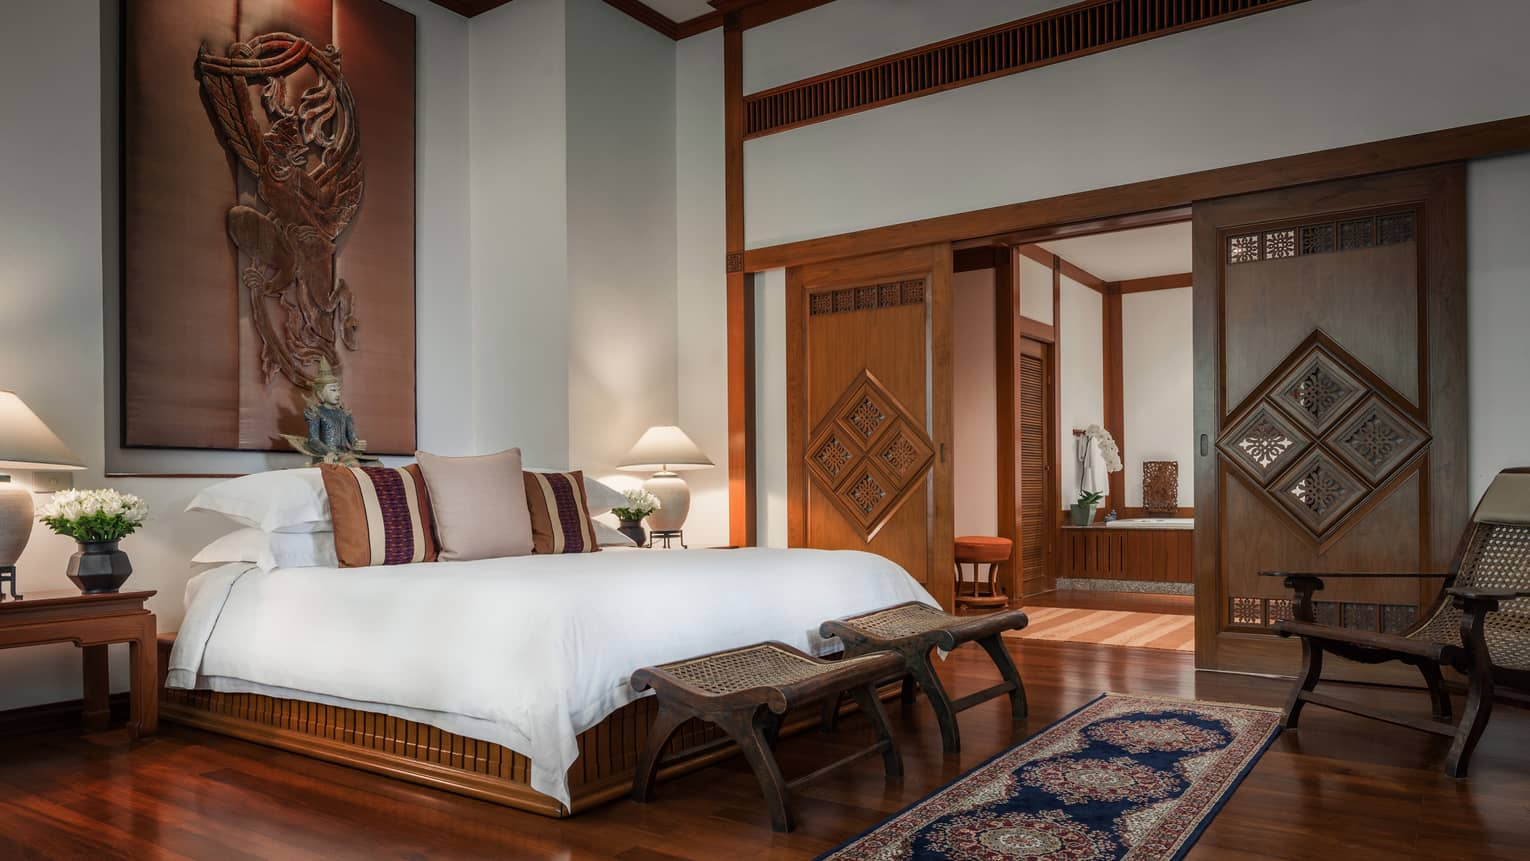 Penthouse Residence bedroom with high ceilings, wood sculpture over bed, sliding wood doors